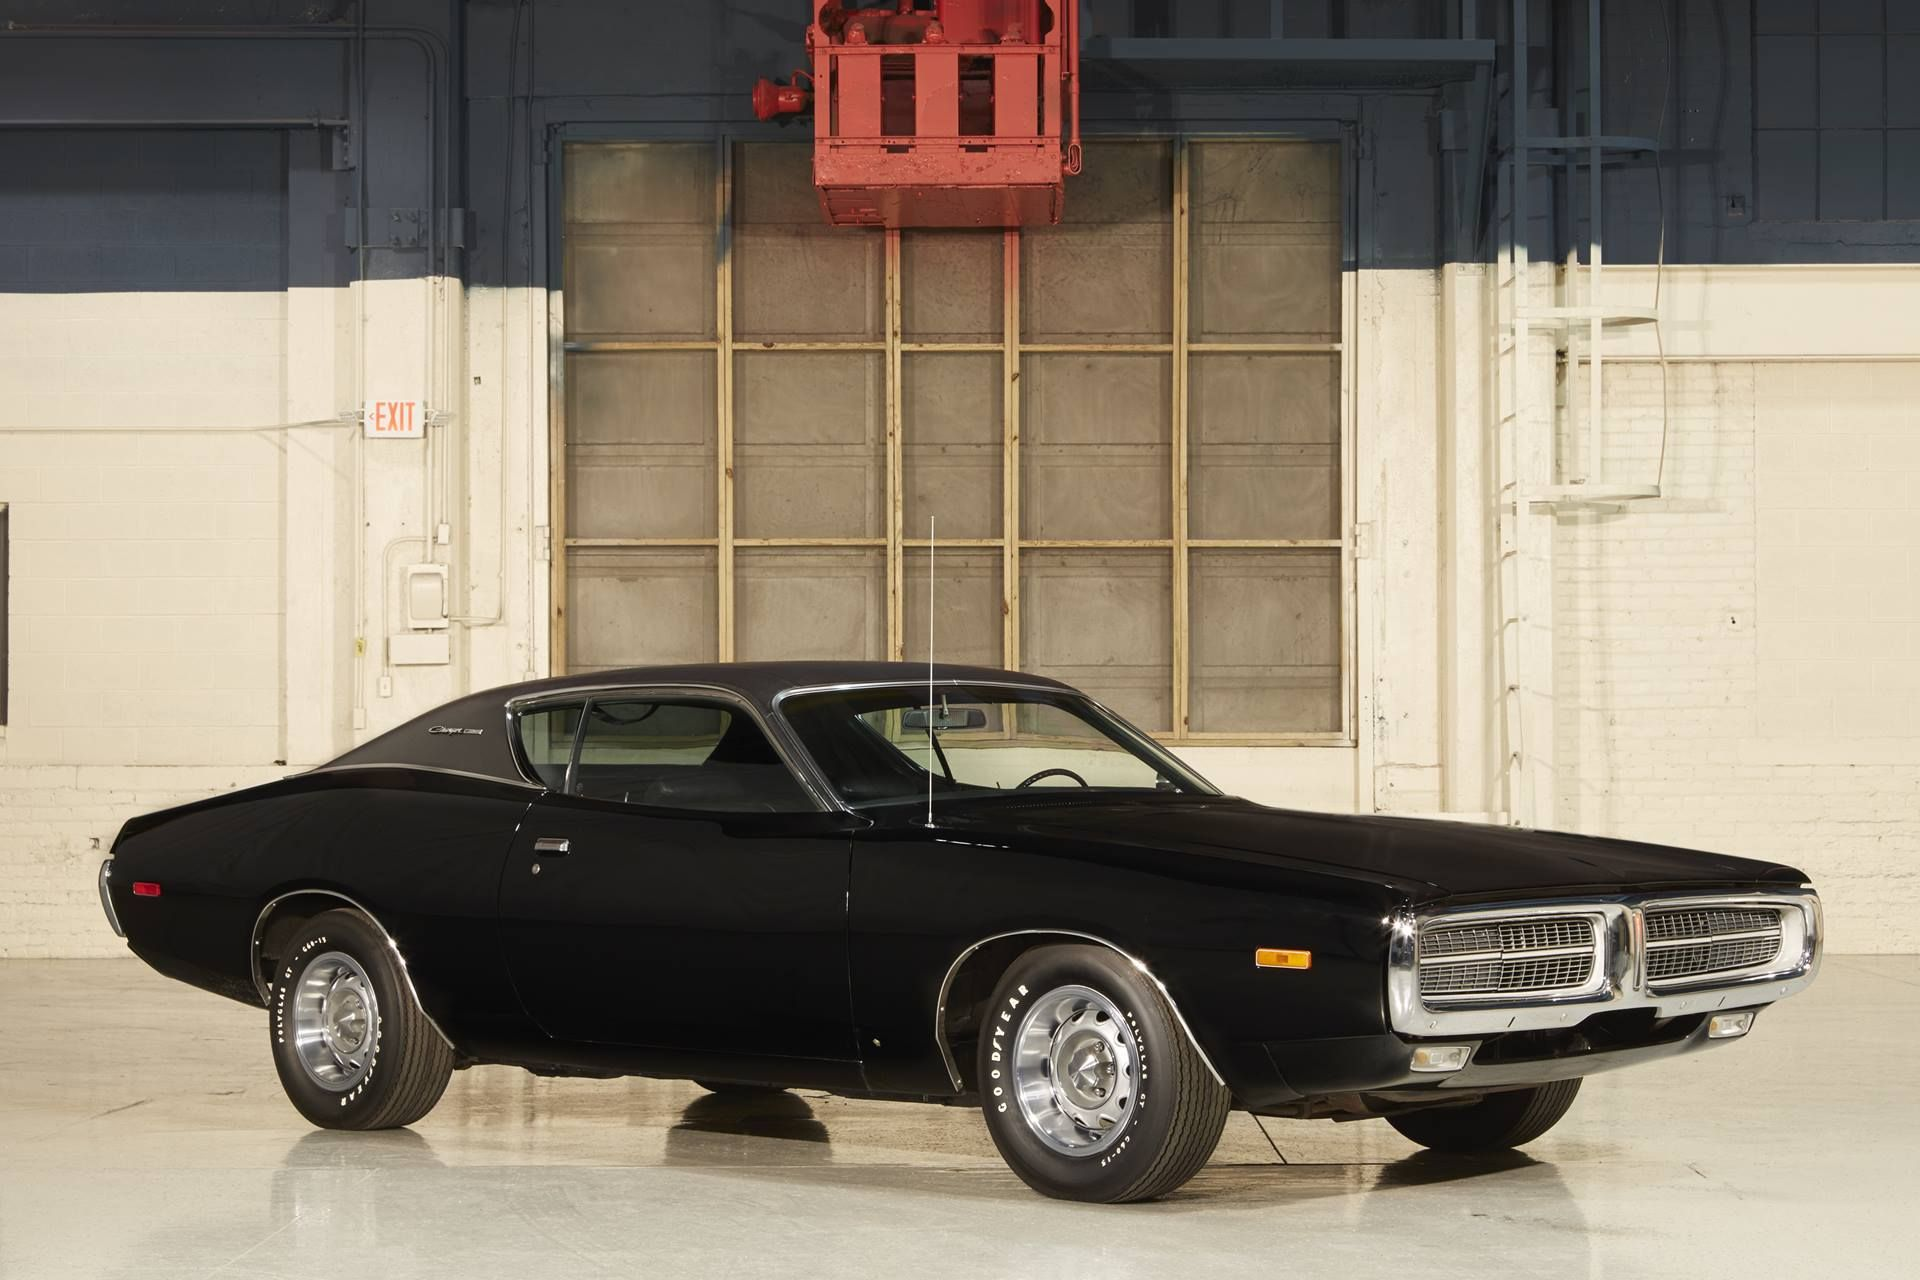 Https Www Hagerty Com Articles Videos Articles 2018 02 23 Muscle